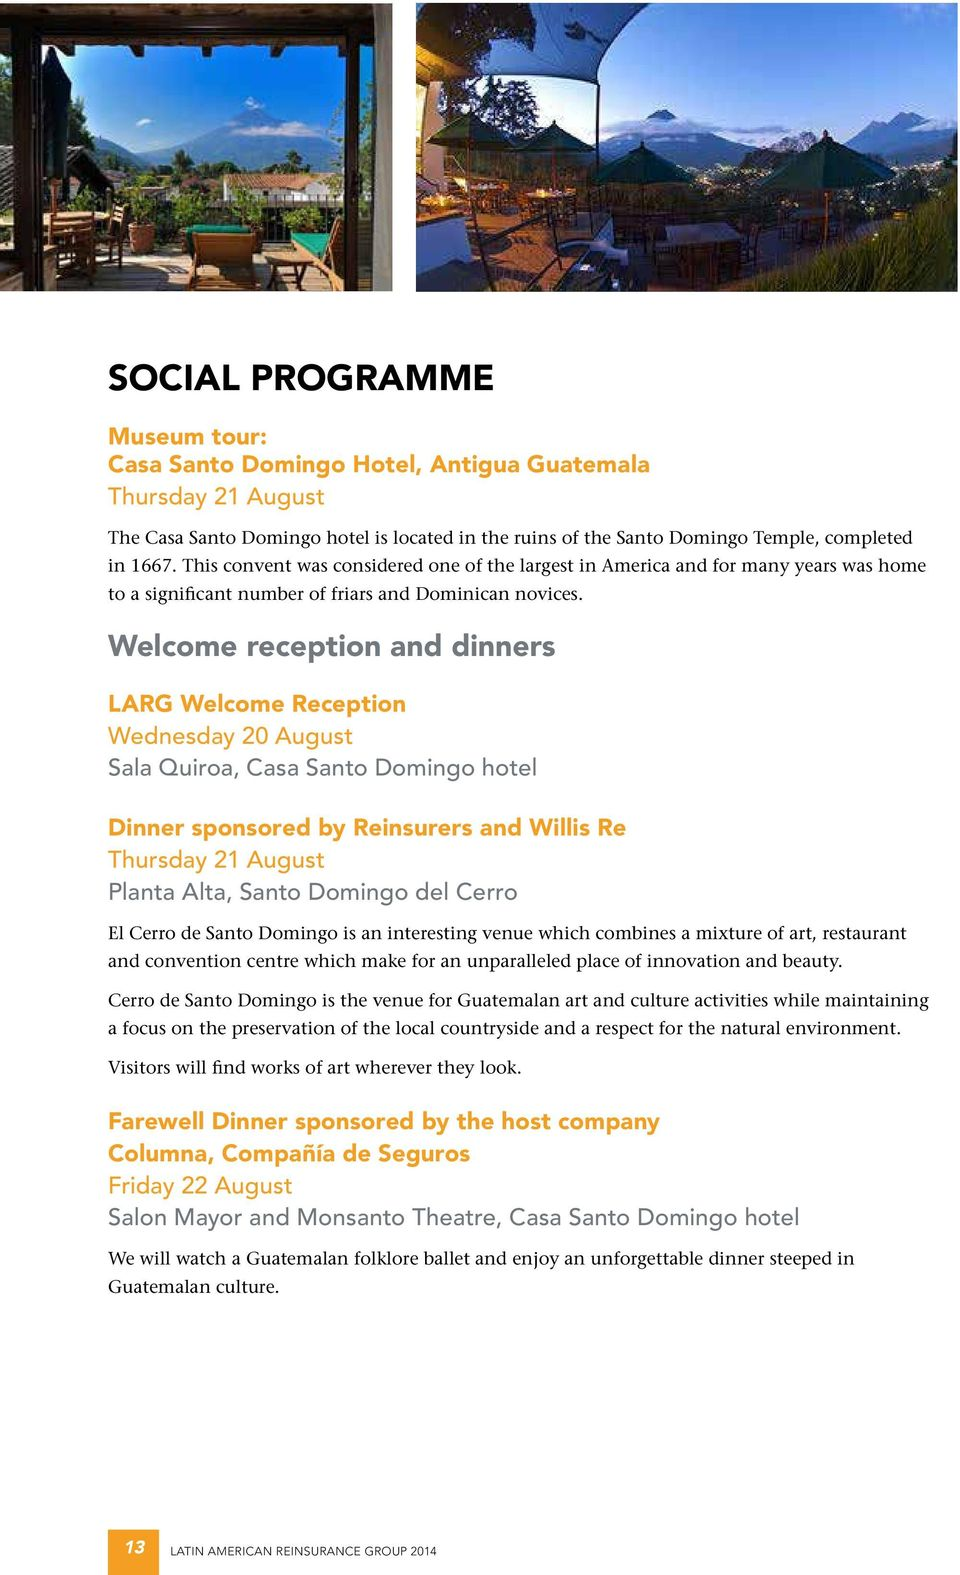 Welcome reception and dinners LARG Welcome Reception Wednesday 20 August Sala Quiroa, Casa Santo Domingo hotel Dinner sponsored by Reinsurers and Willis Re Thursday 21 August Planta Alta, Santo